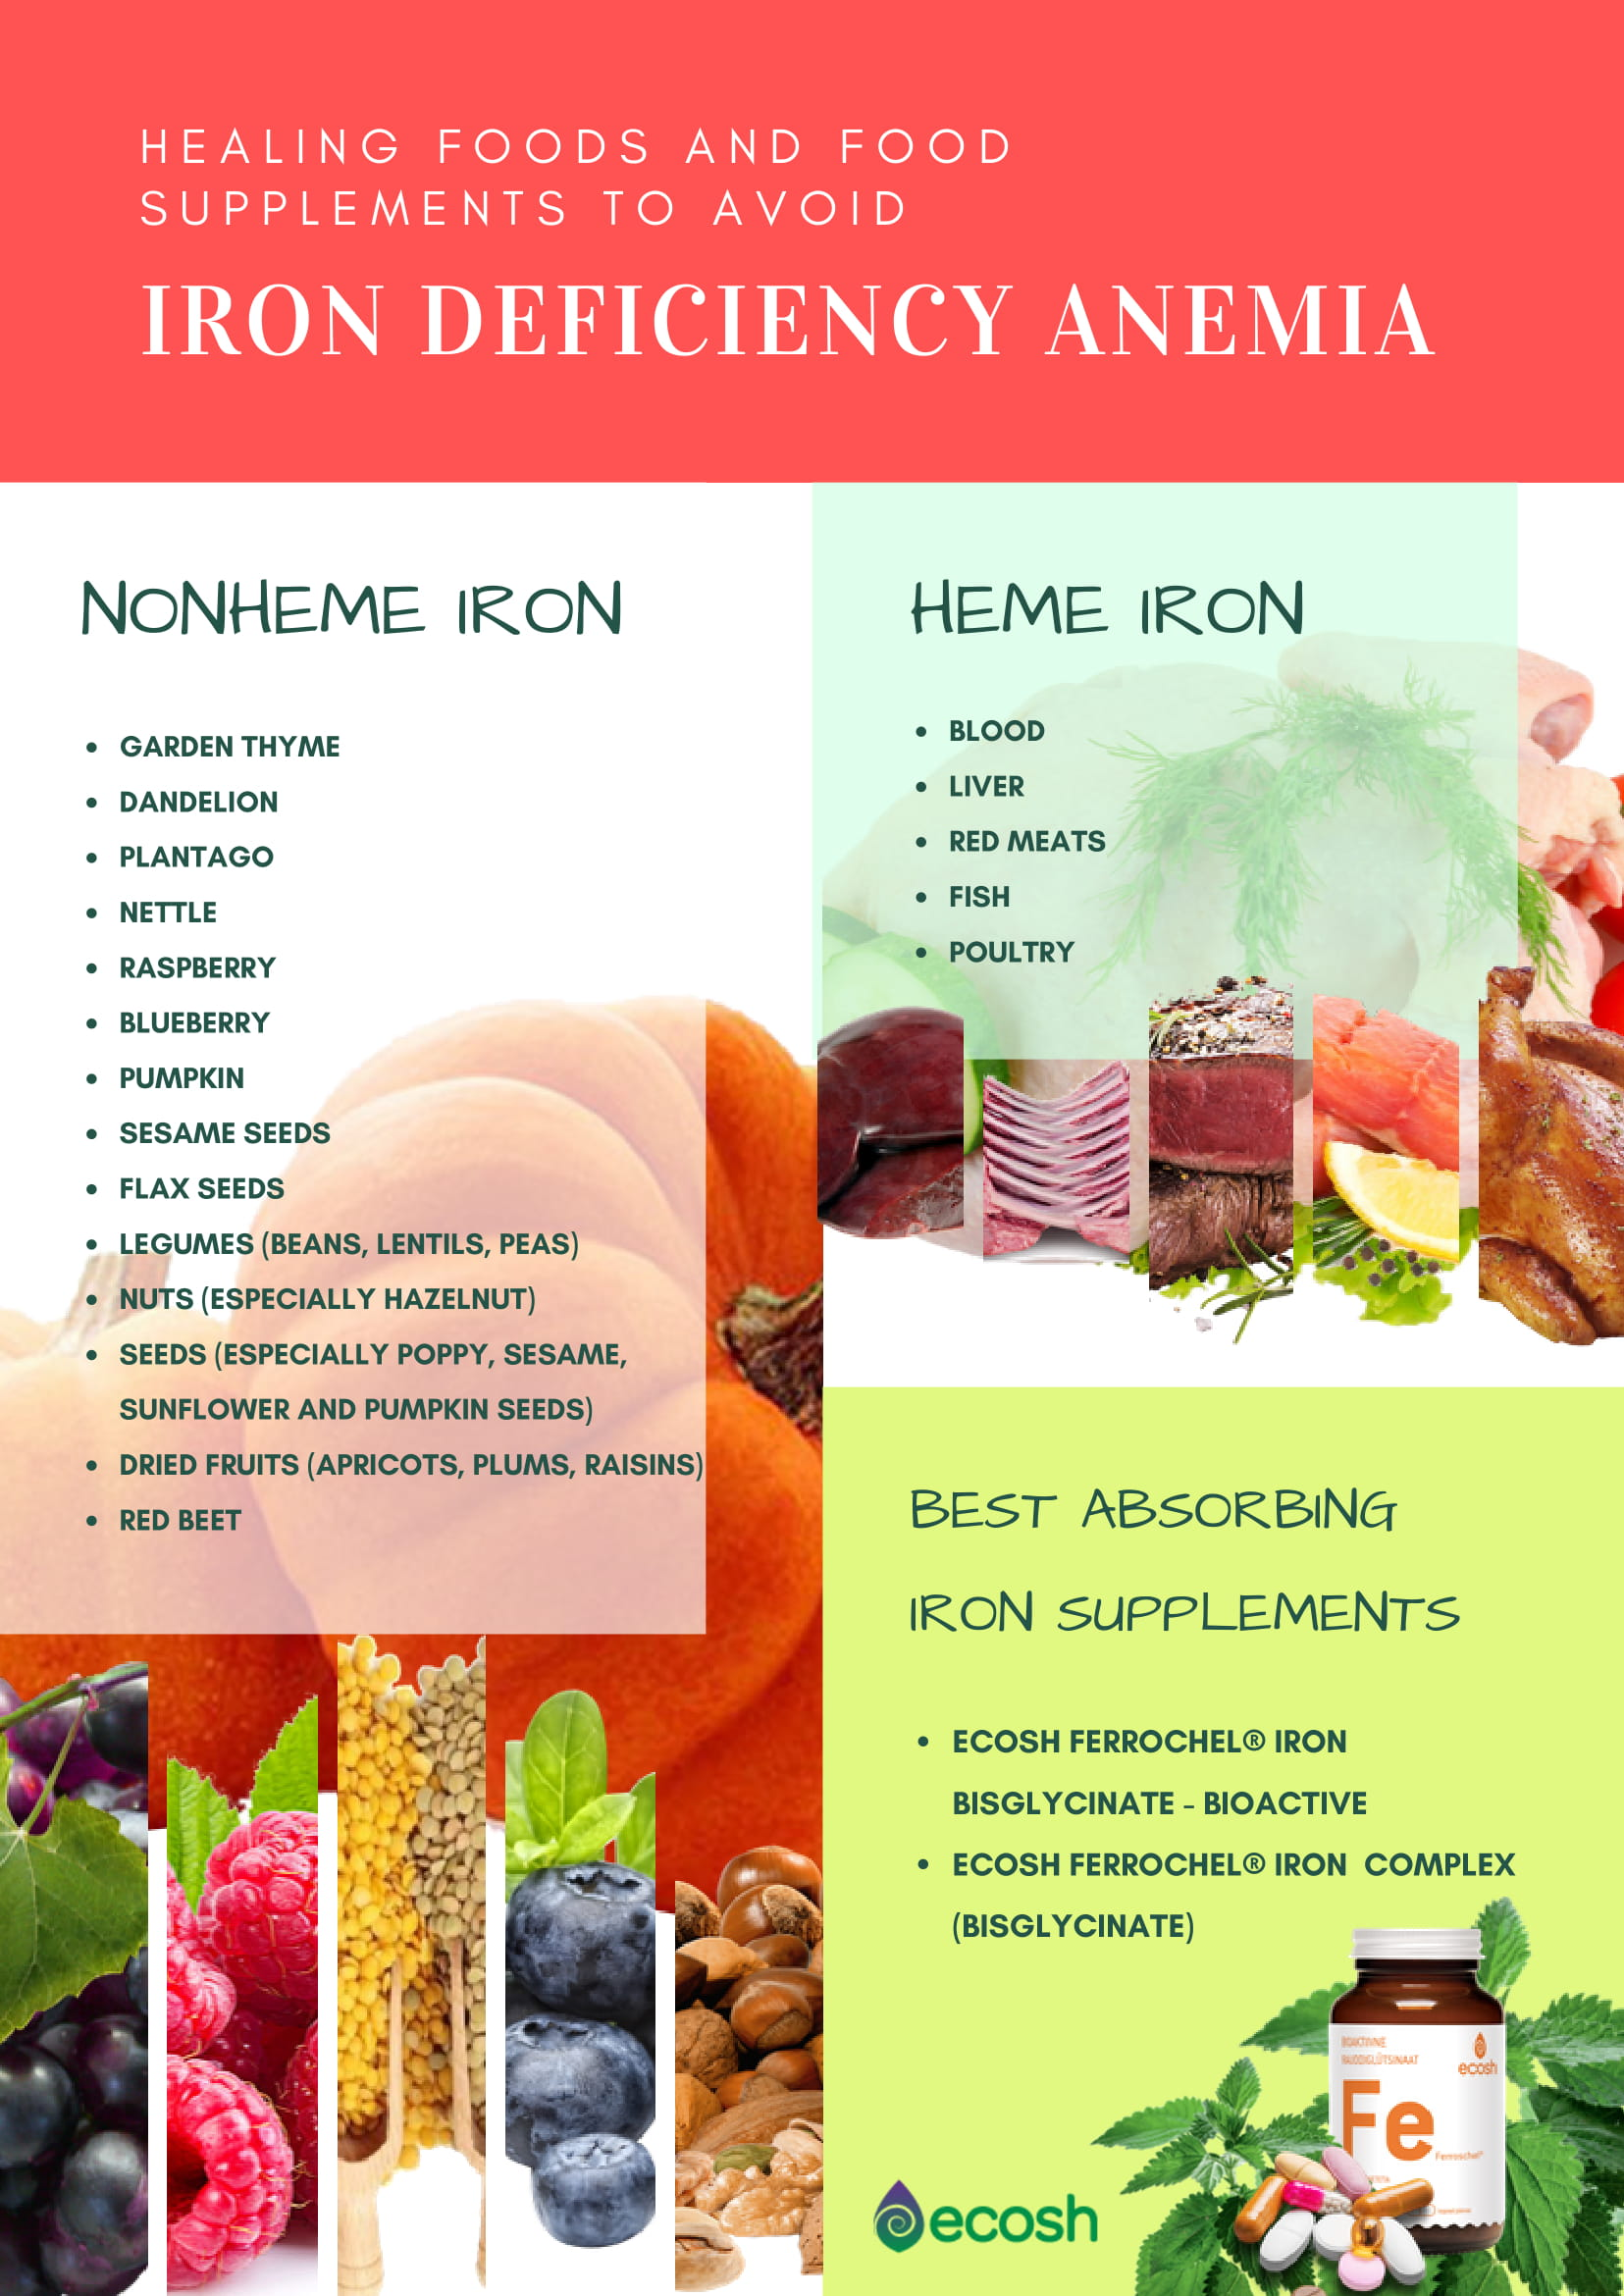 Healing Foods and food supplements to avoid iron deficiency anemia